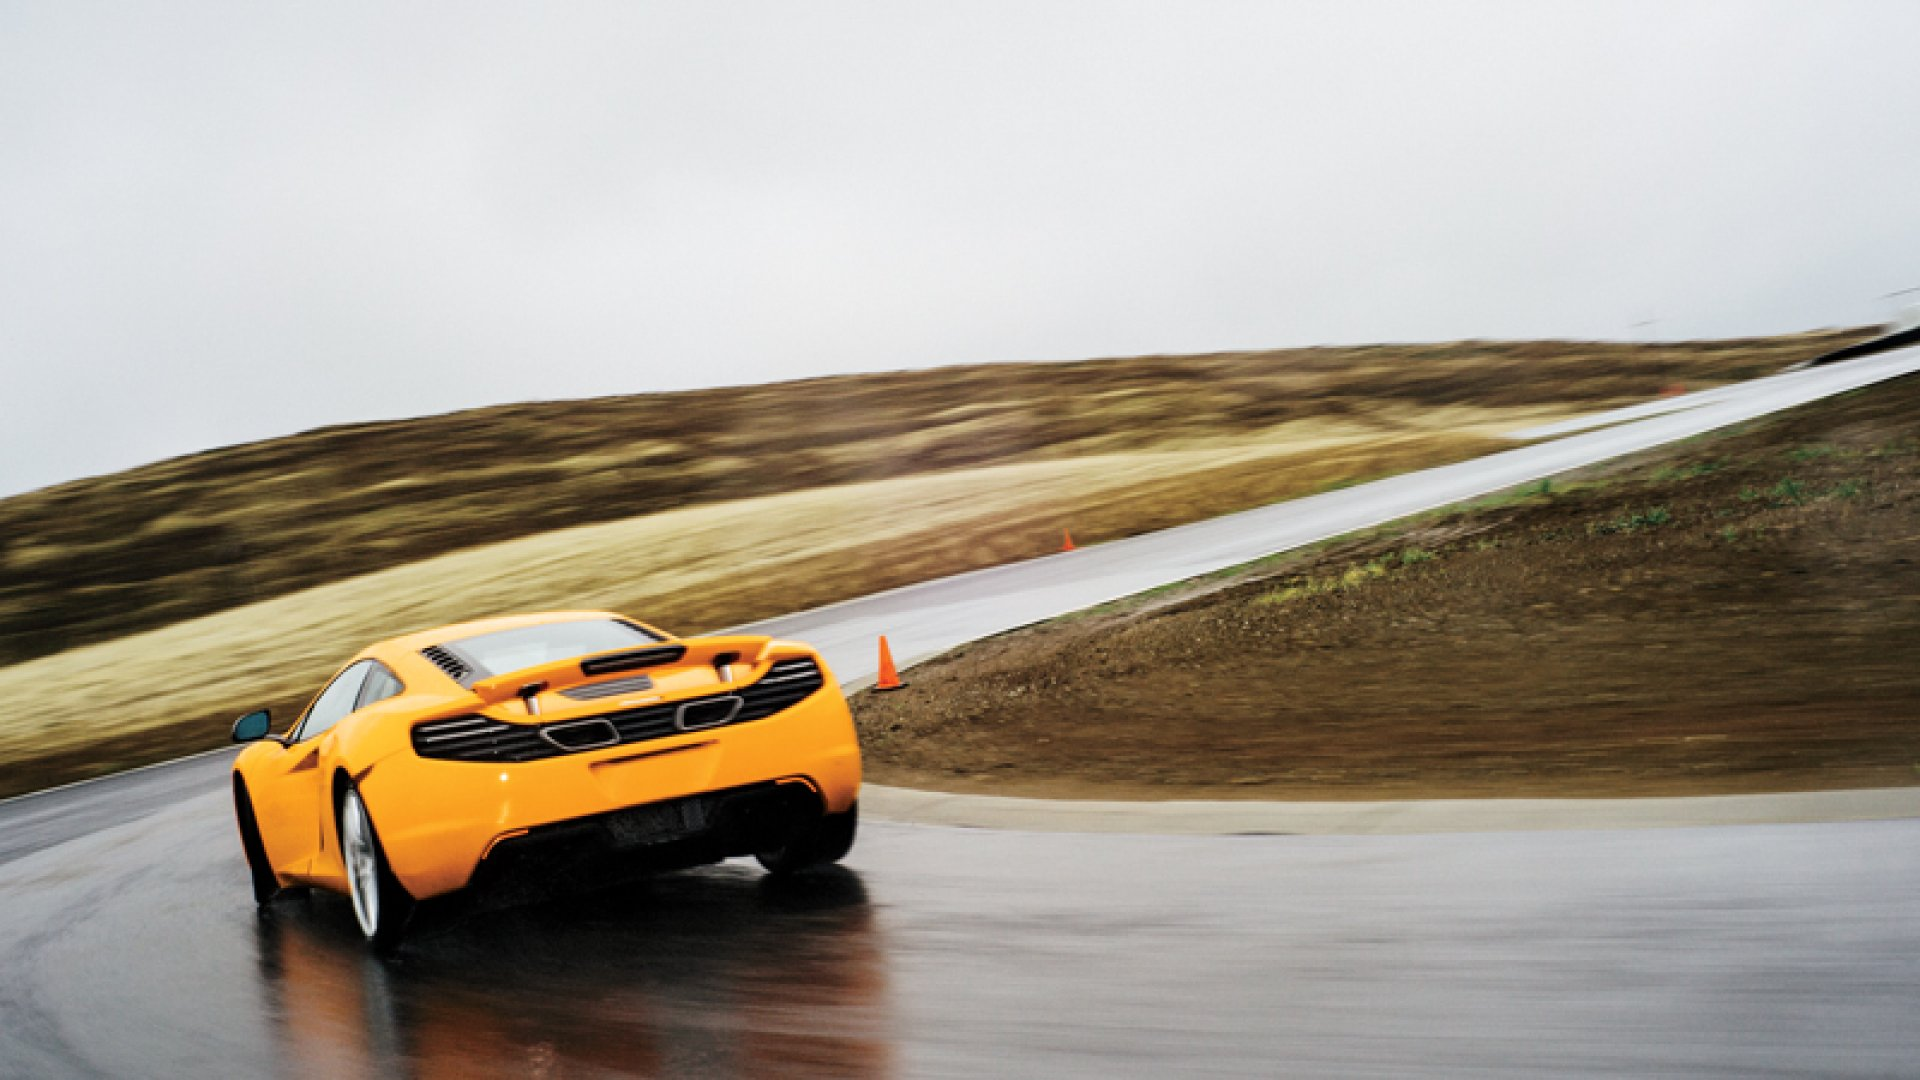 Daniel Ha piloting a McLaren MP4-12C at Thunderhill Raceway in Willows, California.